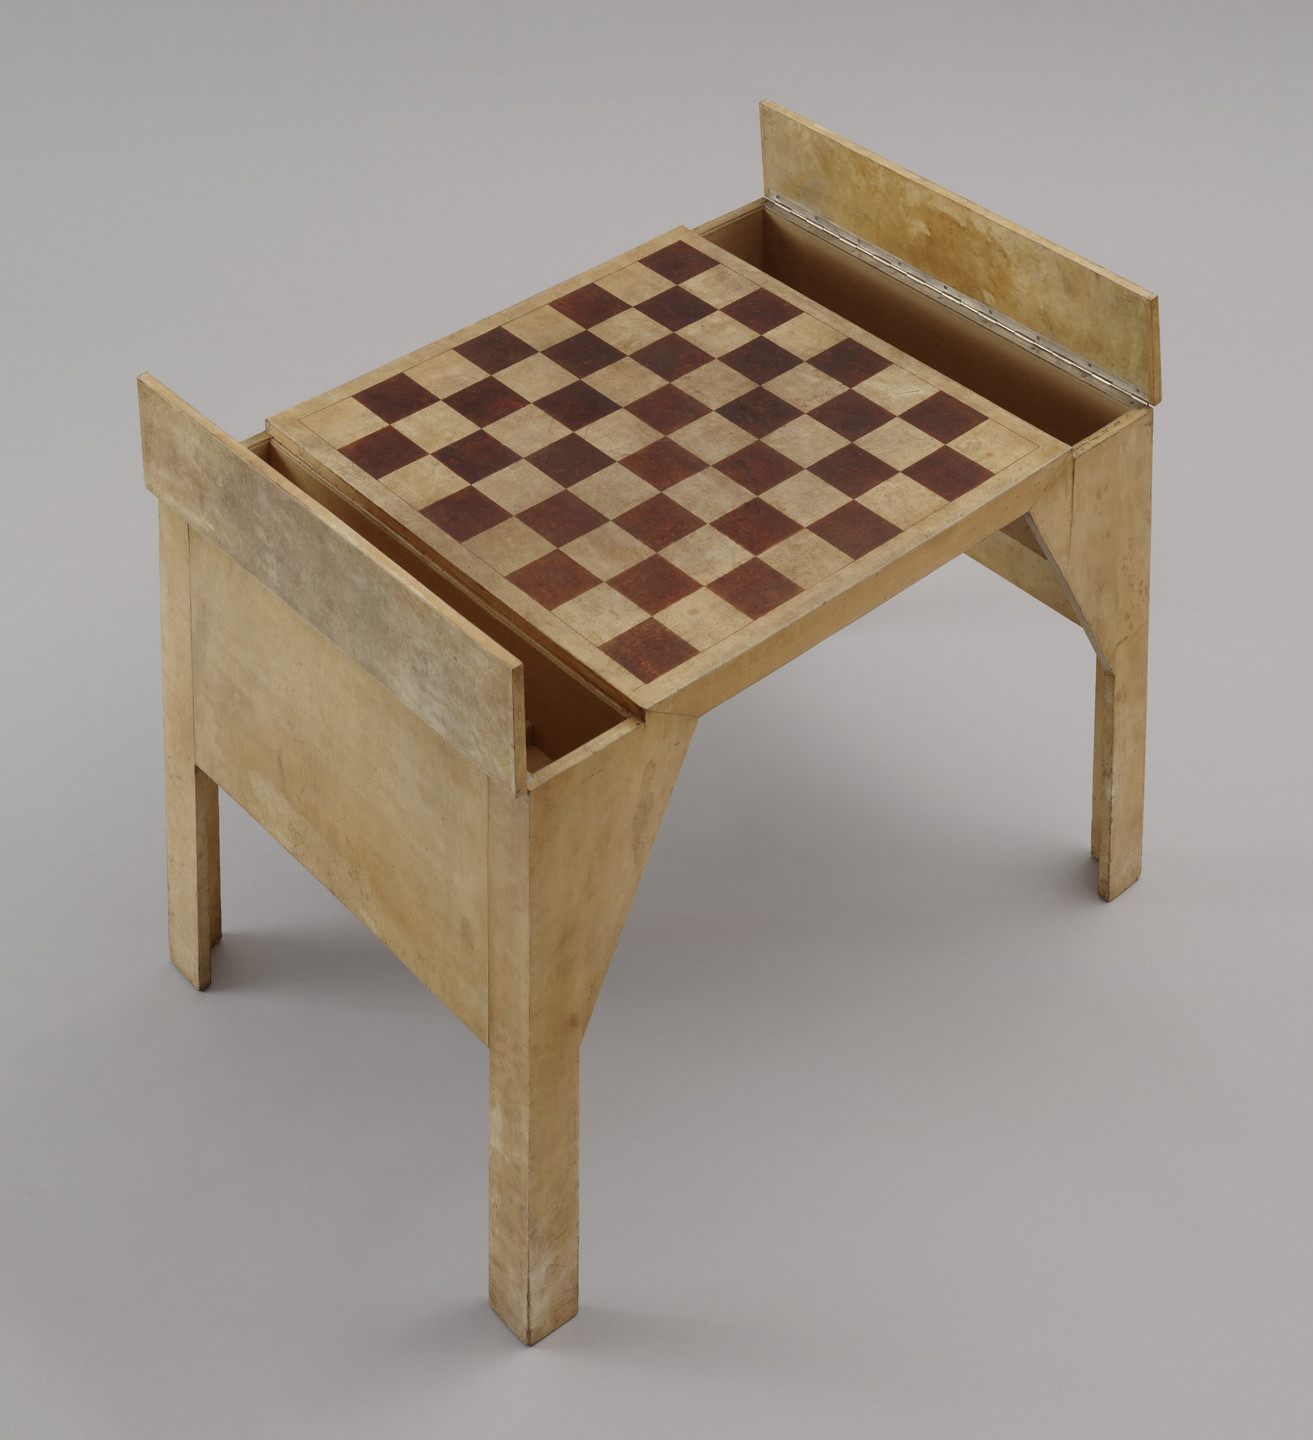 Jean-Michel Frank, Man Ray (Emmanuel Radnitzky). Chess Table. 1929